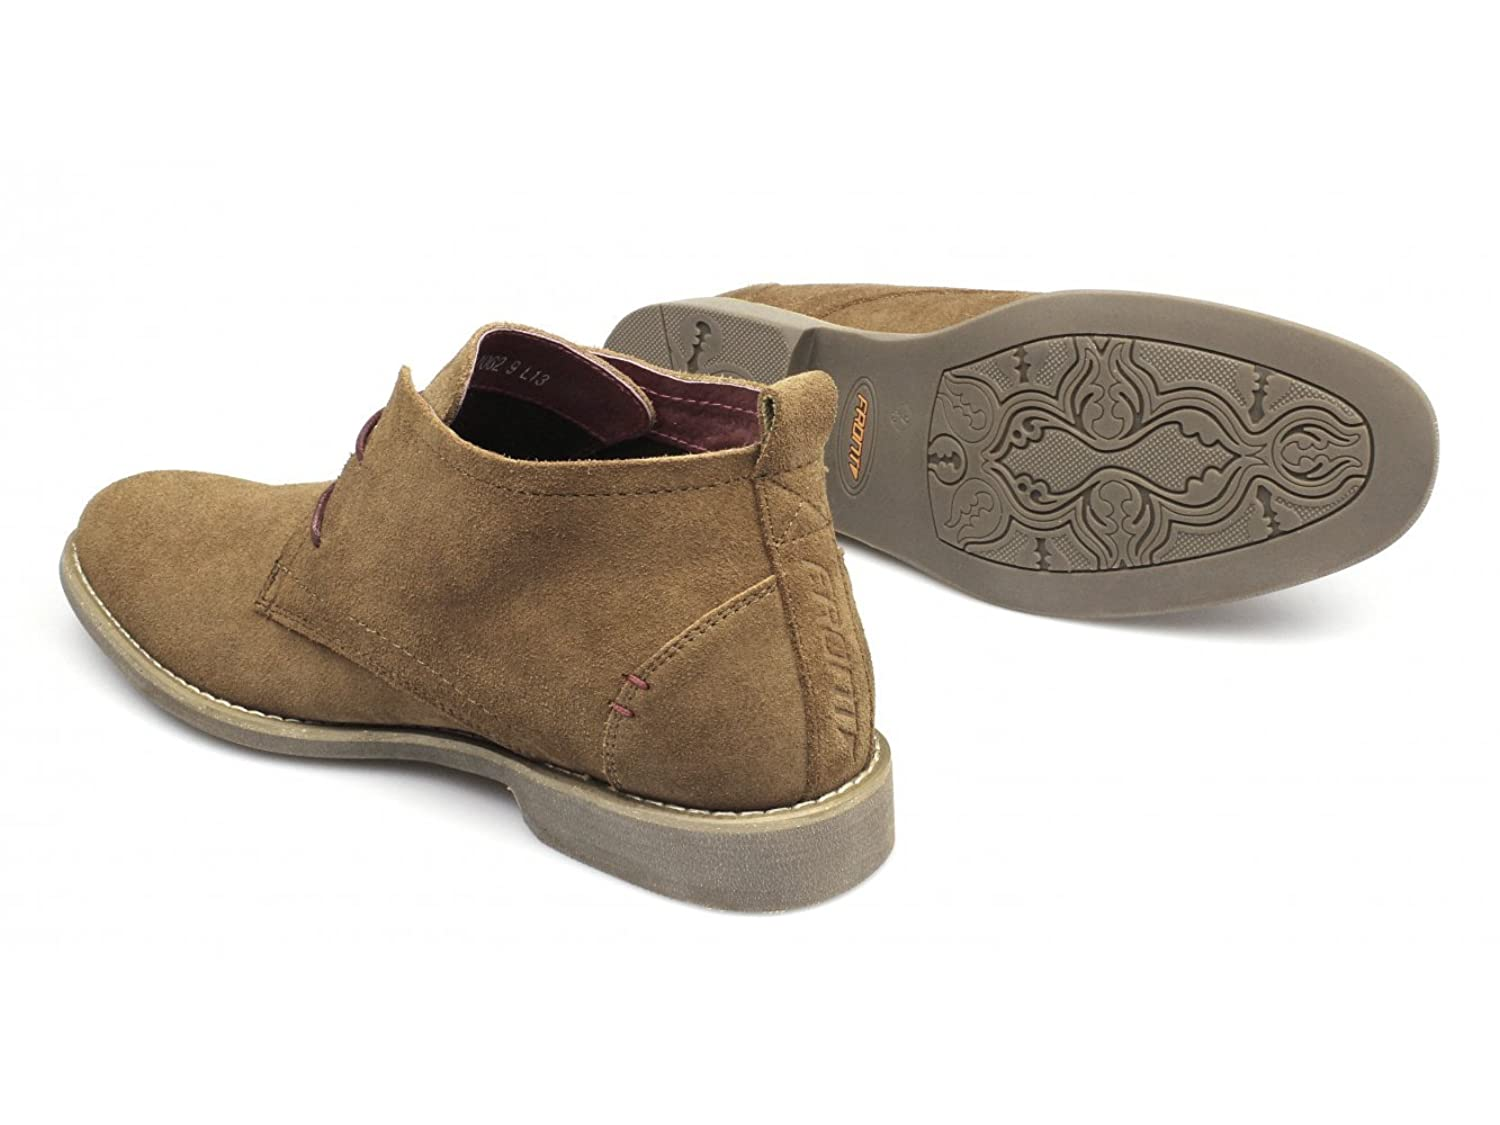 Front ROSCOE Mens Suede Leather Desert Boots Tan: Amazon.co.uk: Shoes & Bags